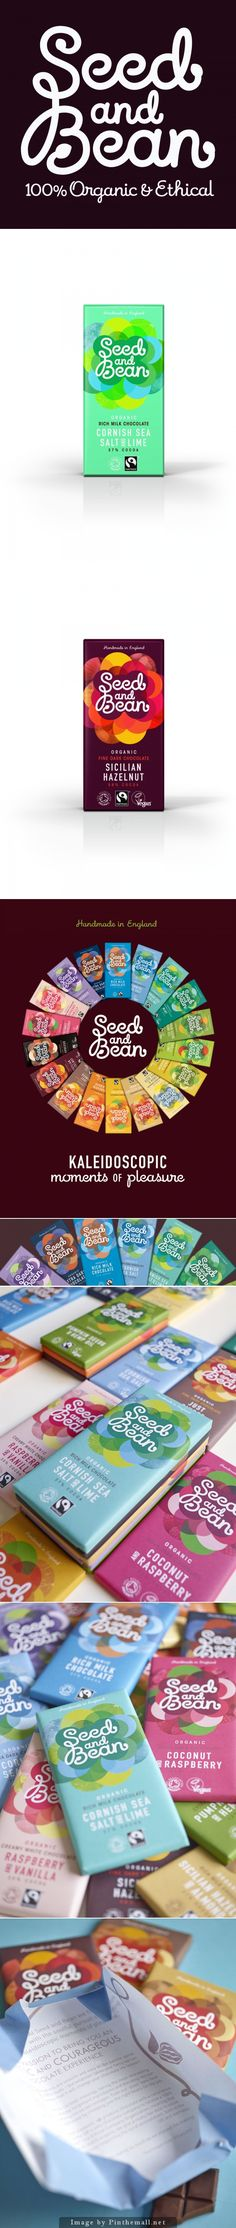 Seed and Bean Kaleidoscope of #chocolate #packaging PD